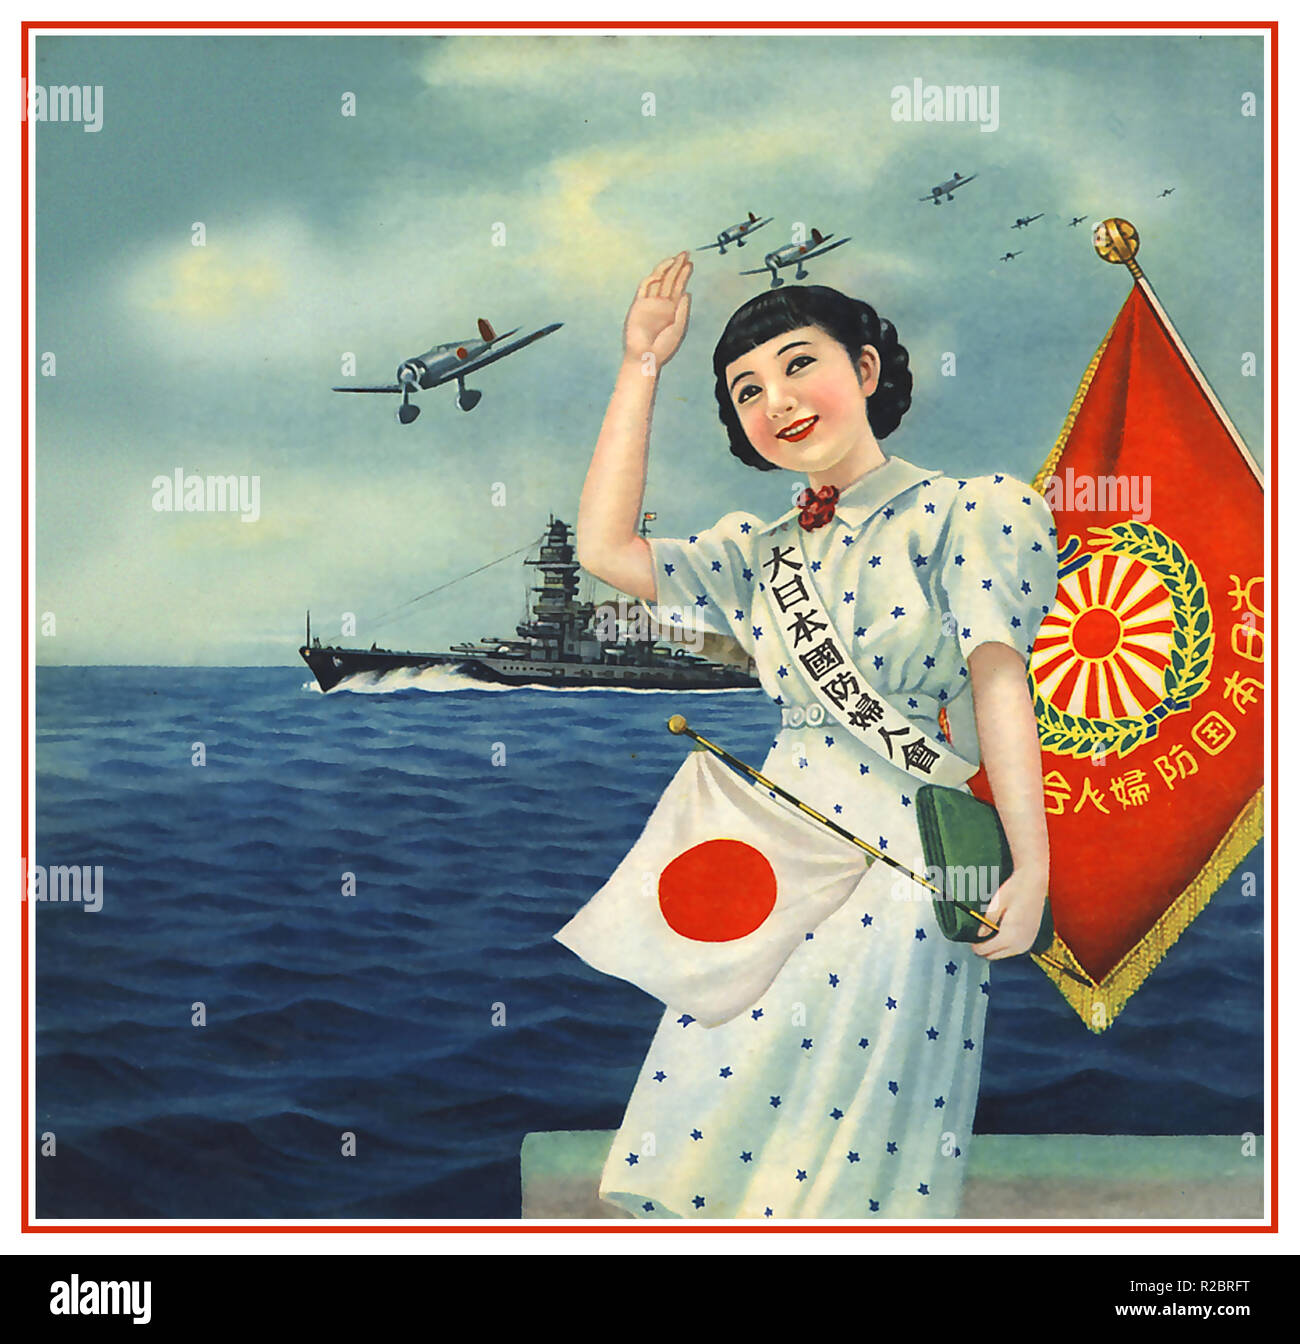 WW2  1940's Japanese Propaganda Poster from the Greater Japan National Defense Women's Association showing young pin-up girl waving to Kamikaze pilots flying on a deadly one way mission for their country. Kamikaze, officially Tokubetsu Kōgekitai, were a part of the Japanese Special Attack Units of military aviators who initiated bombing suicide attacks for the Empire of Japan against Allied naval vessels in the Pacific Theatre of War - Stock Image